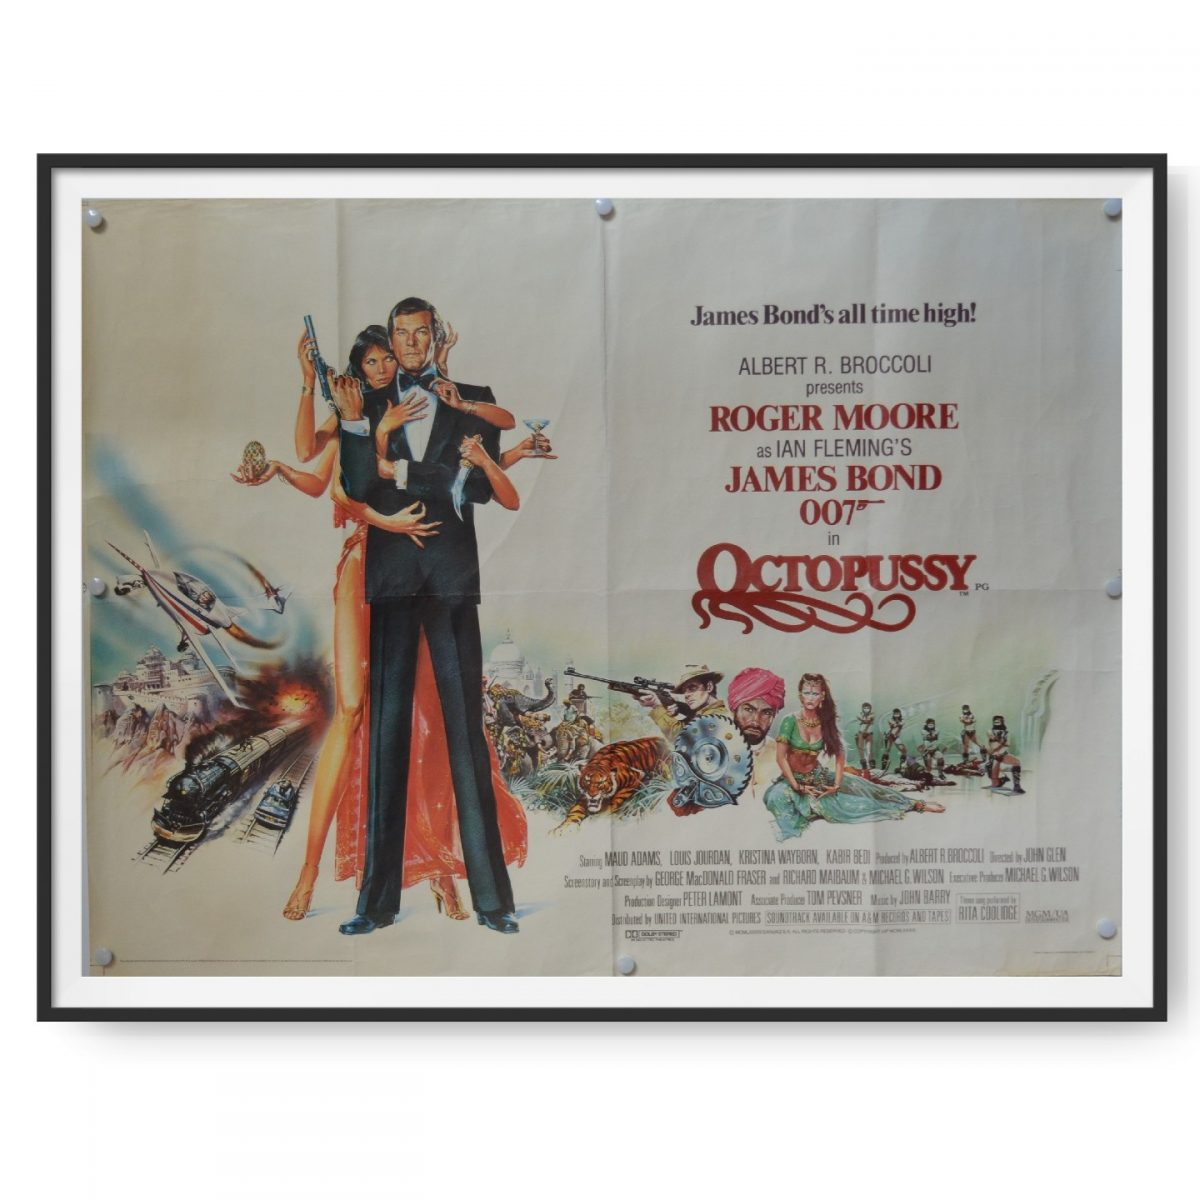 This is a UK Quad Poster for the James Bond film Octopussy. Roger Moore plays James Bond and can be seen on the poster with Maud Adams.